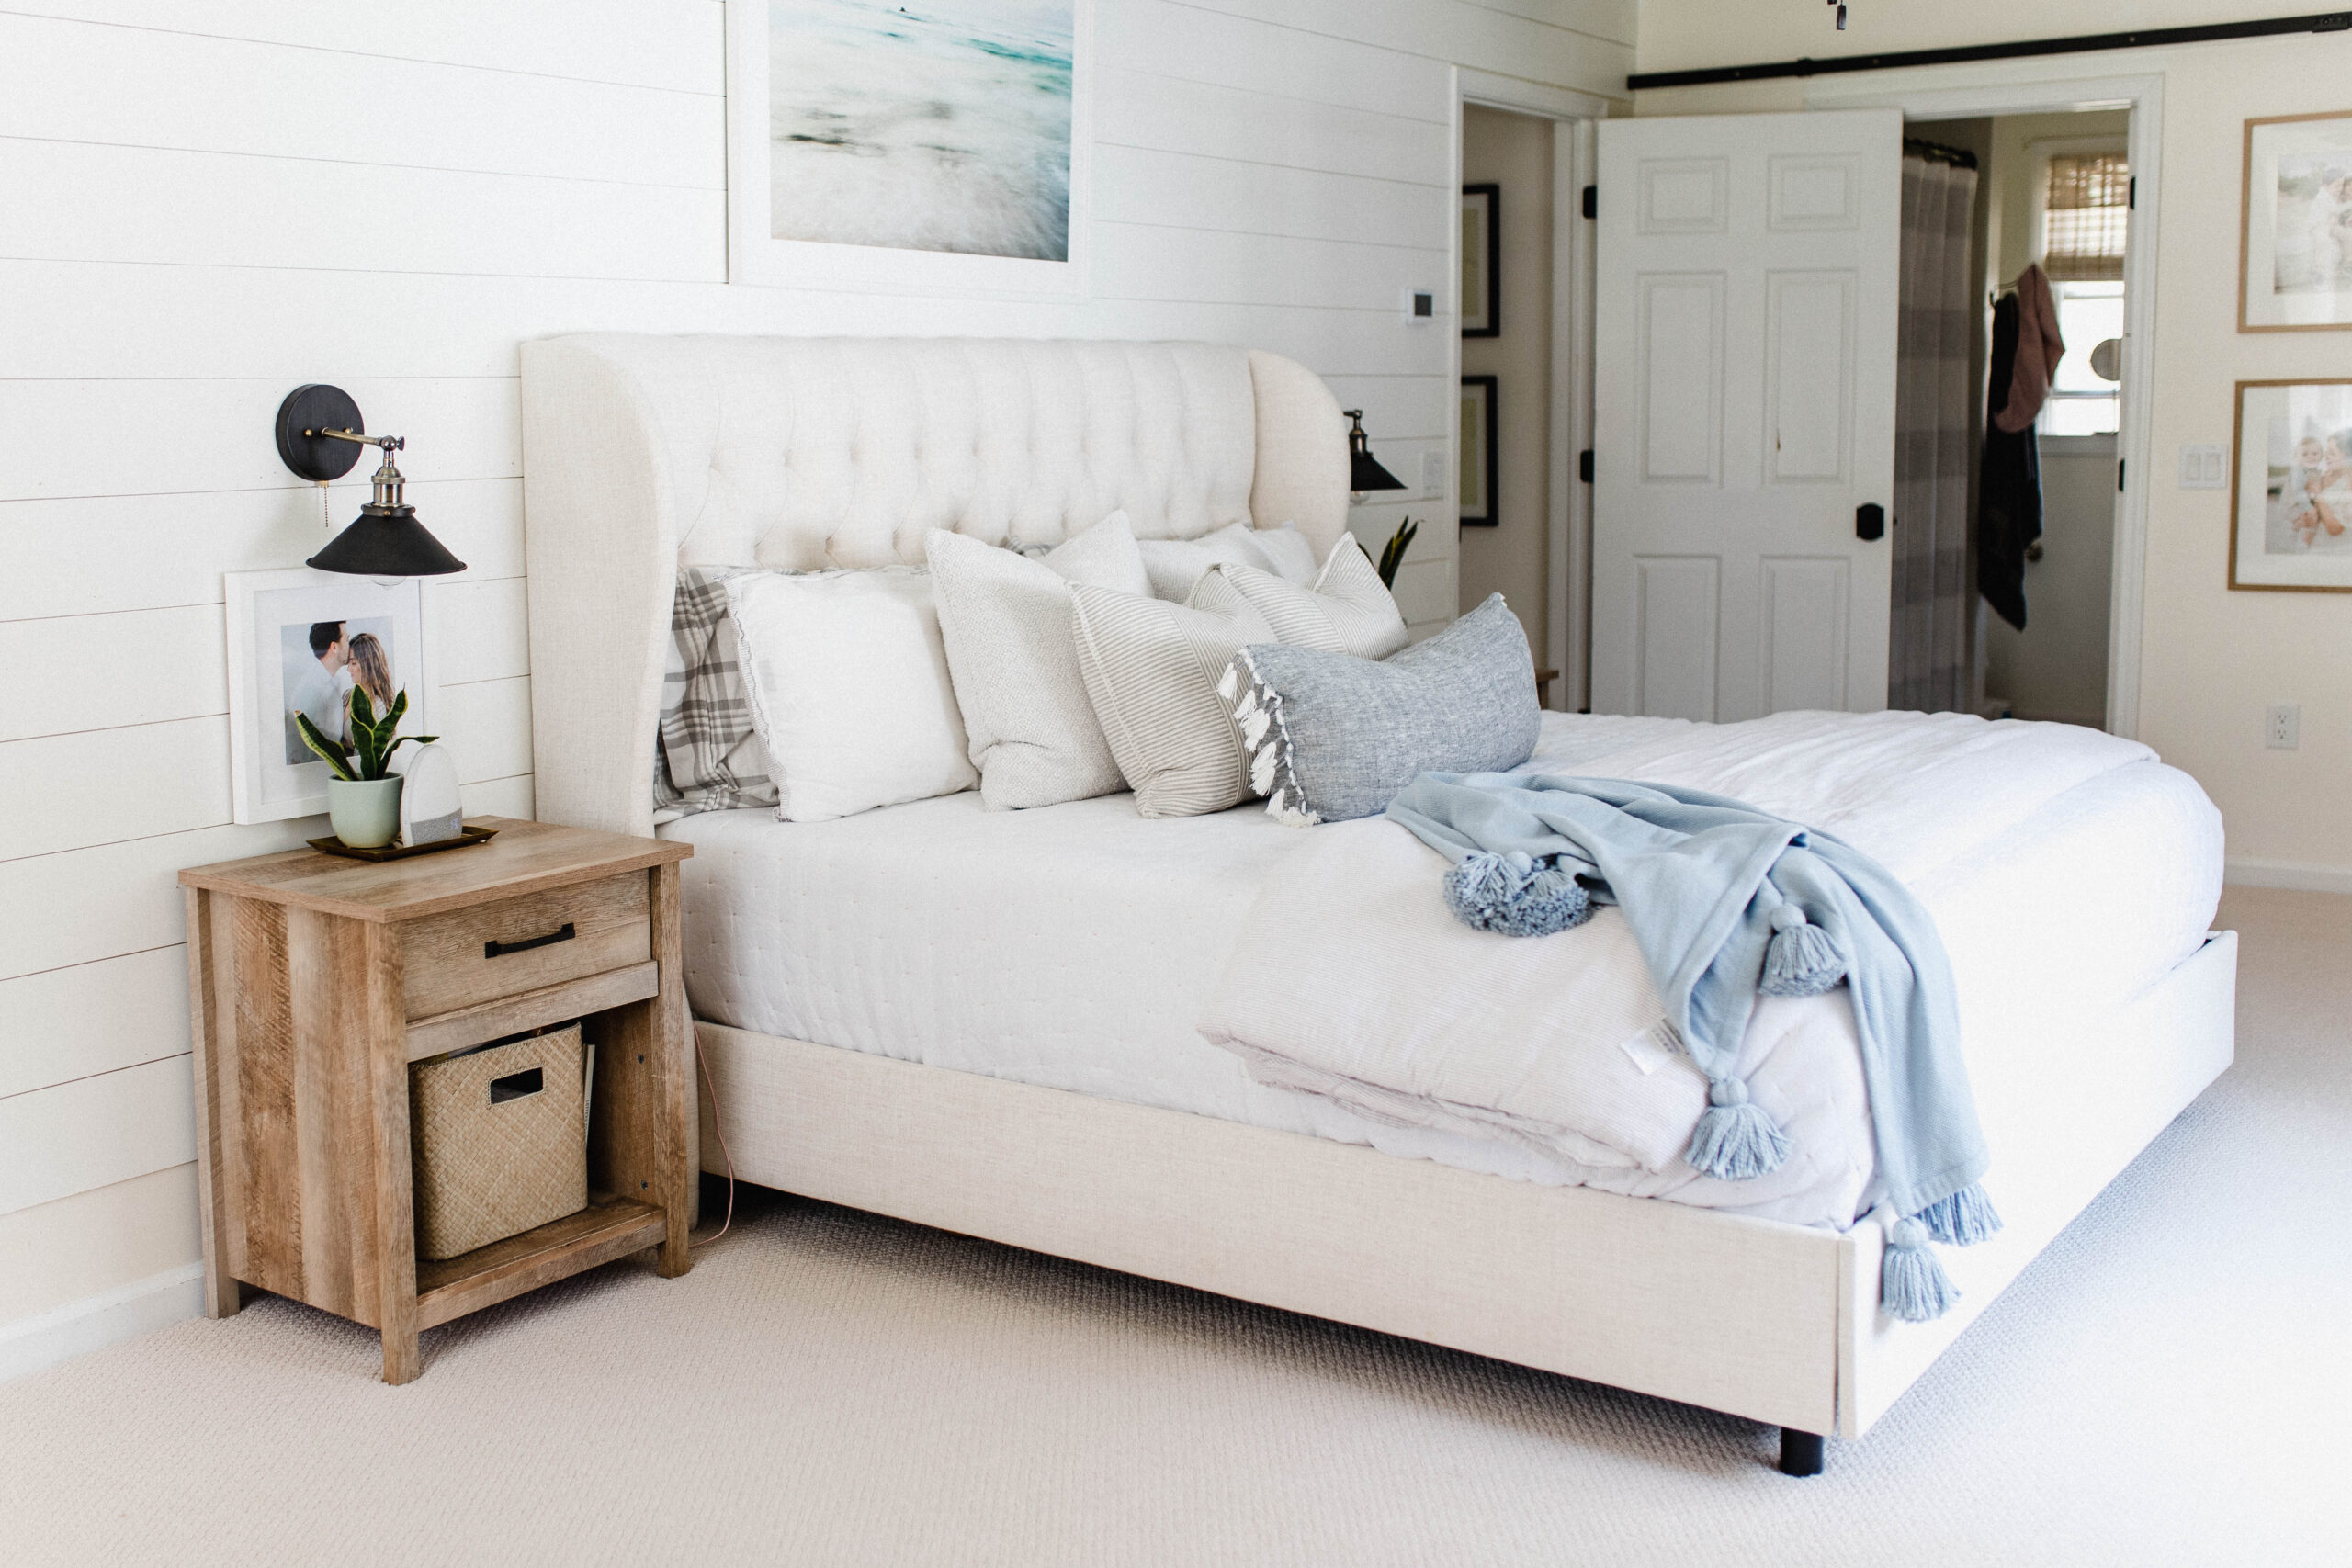 Connecticut life and style blogger Lauren McBride shares a home tour of her master bedroom, featurng paint colors and a source list.